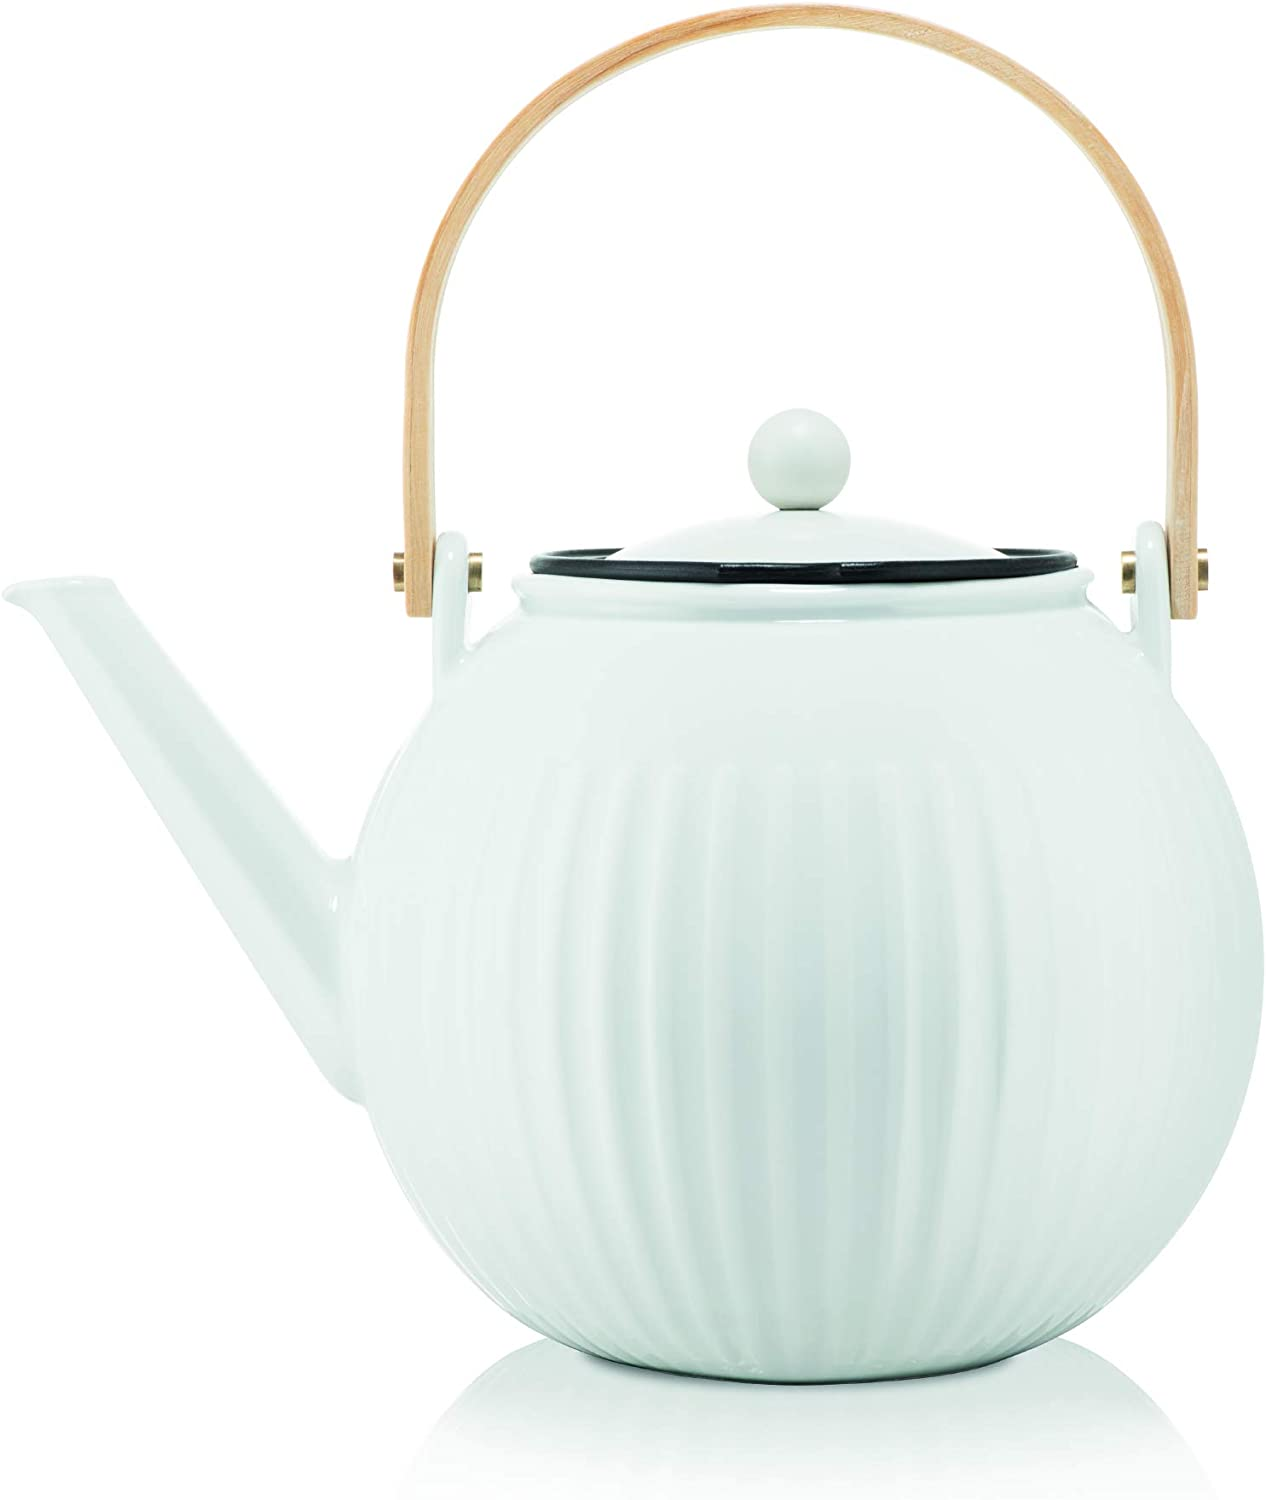 Bodum Douro Porcelain Teapot with Stainless Steel Filter 1.5 Litres